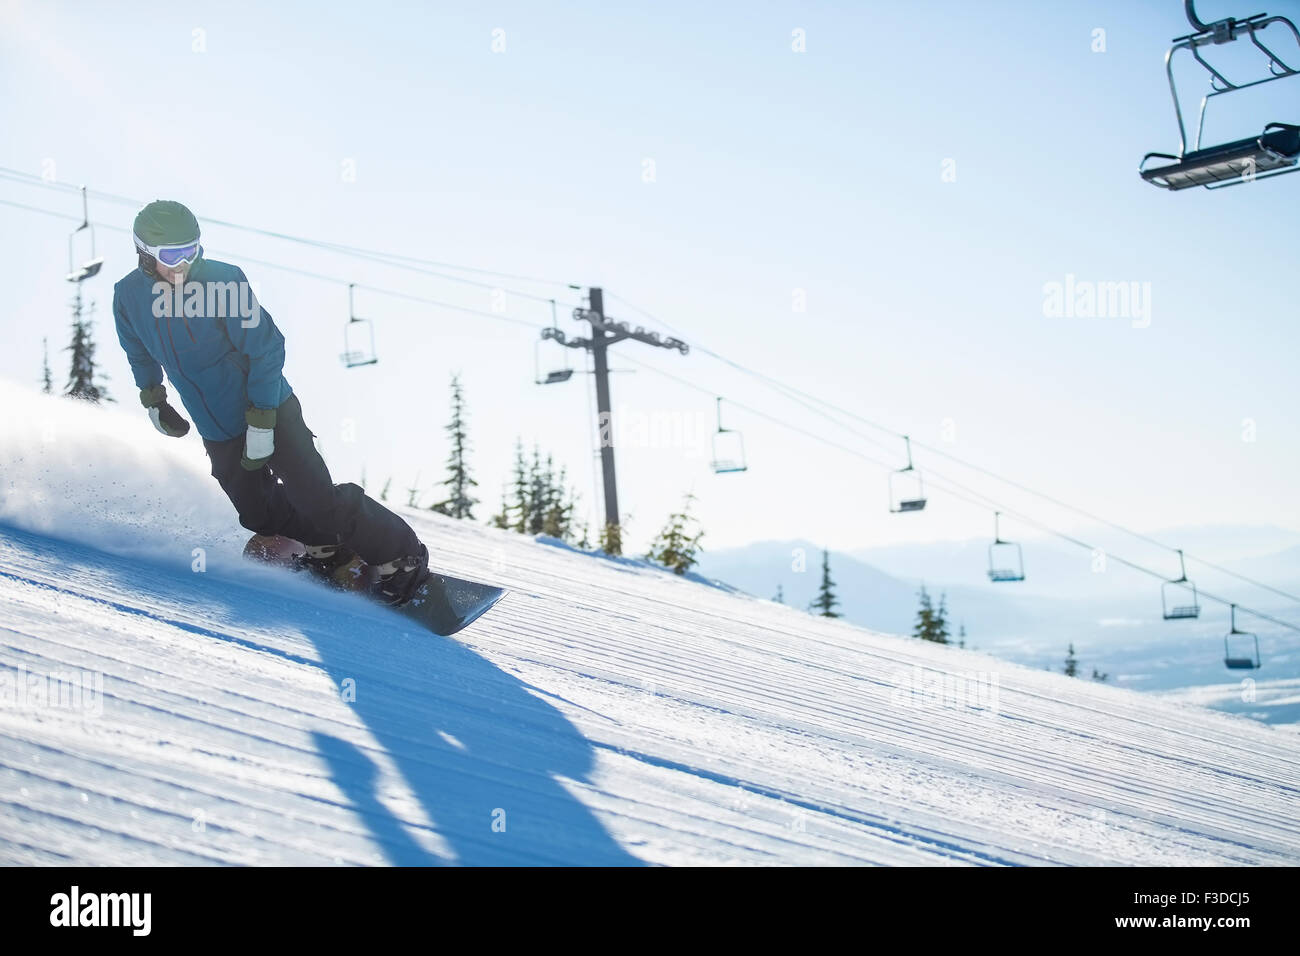 Homme snowboard ski Photo Stock